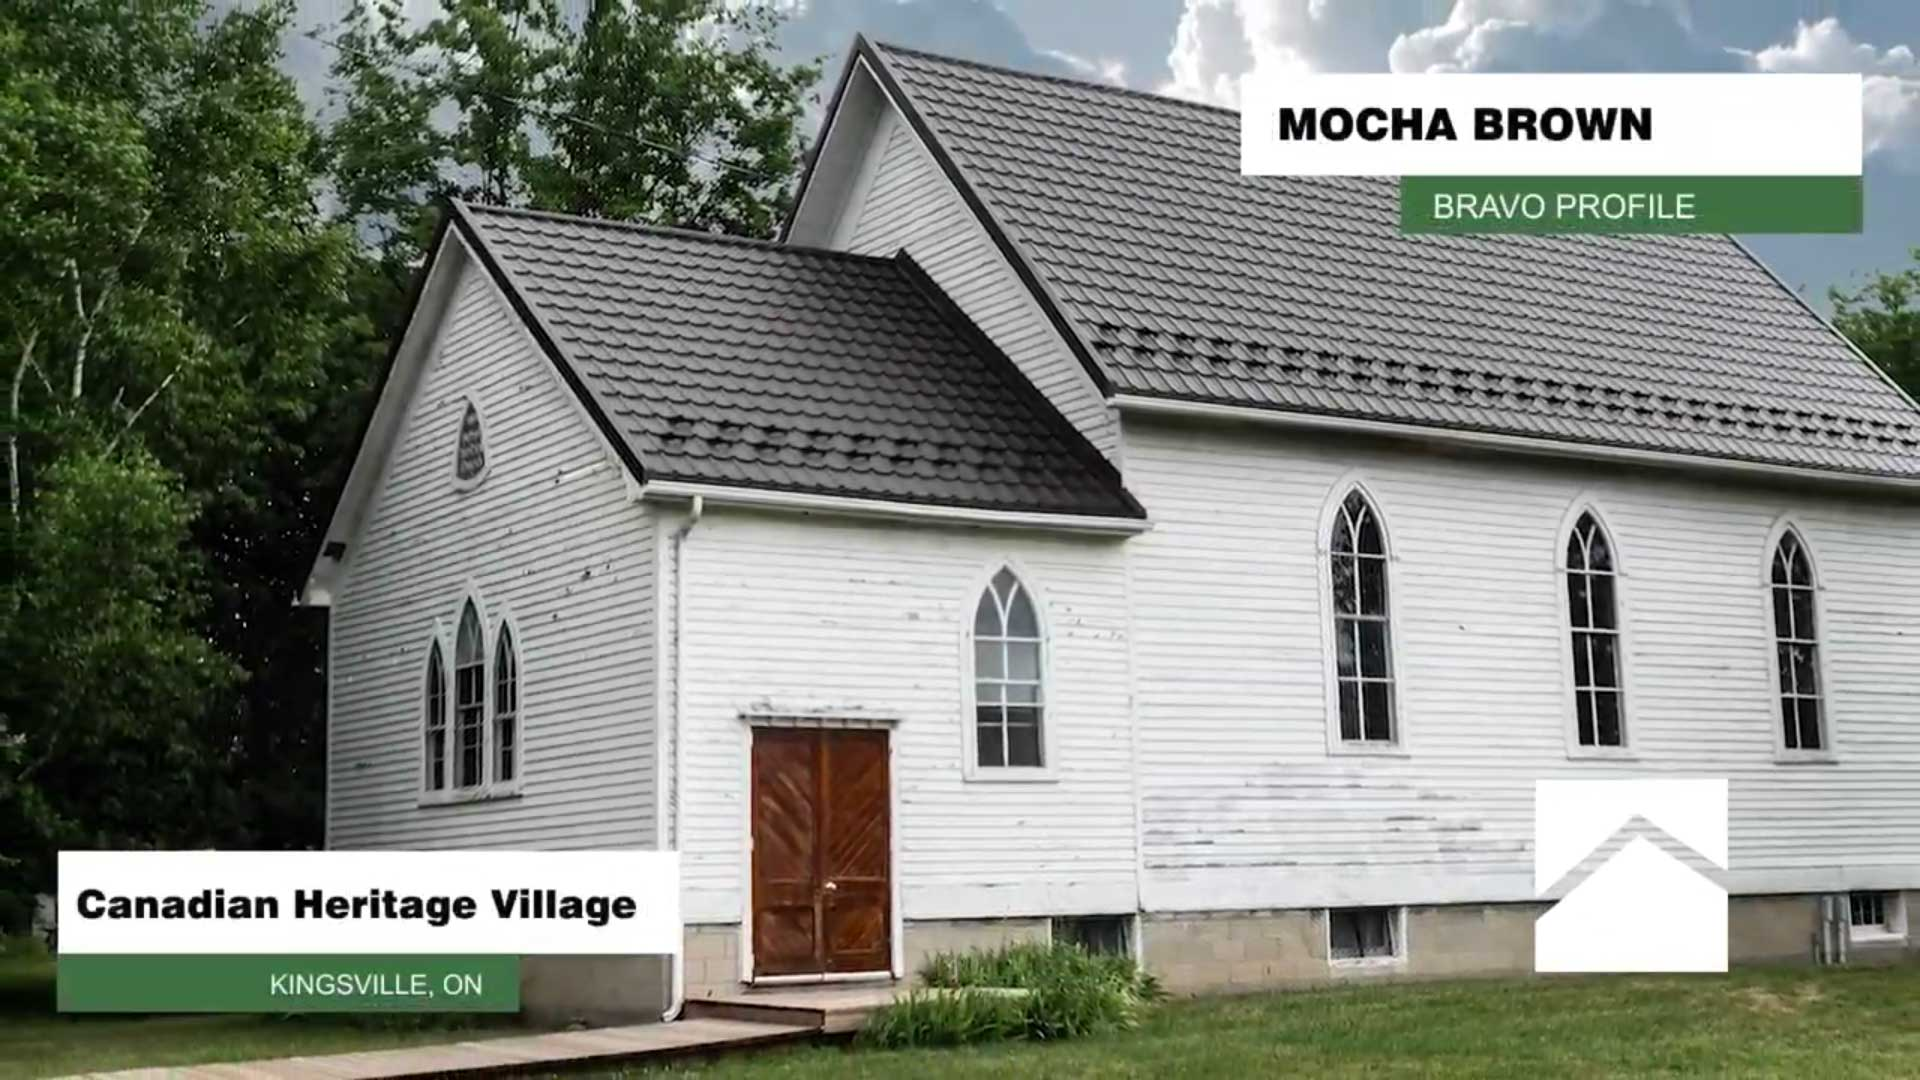 Canadian Heritage Village Kingsville Ontario Bravo Profile Mocha Brown Colour